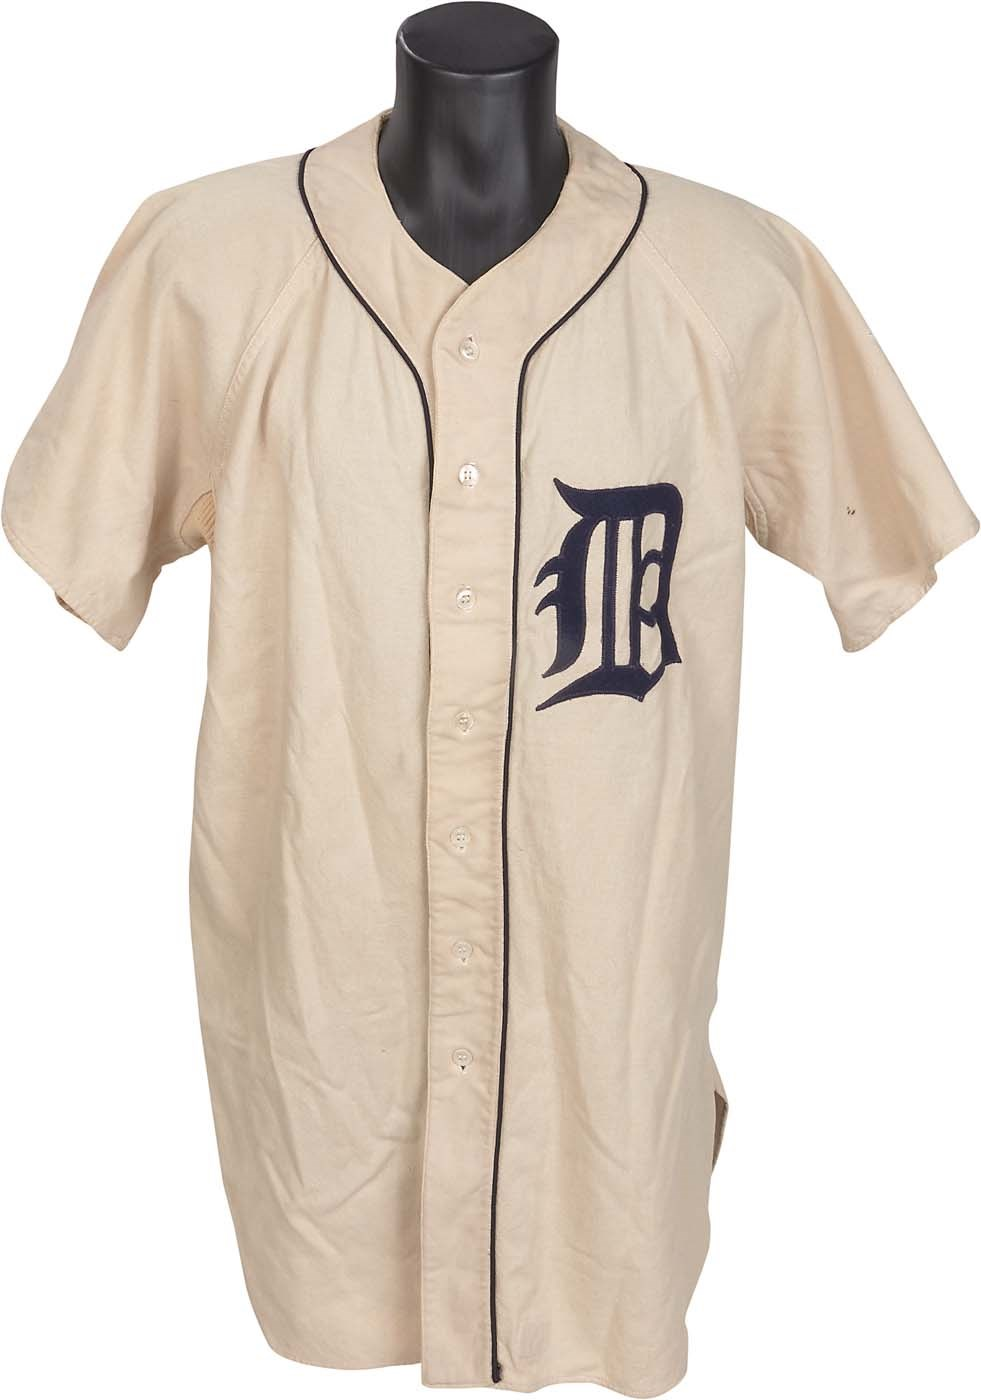 Ty Cobb and Detroit Tigers - Masters17